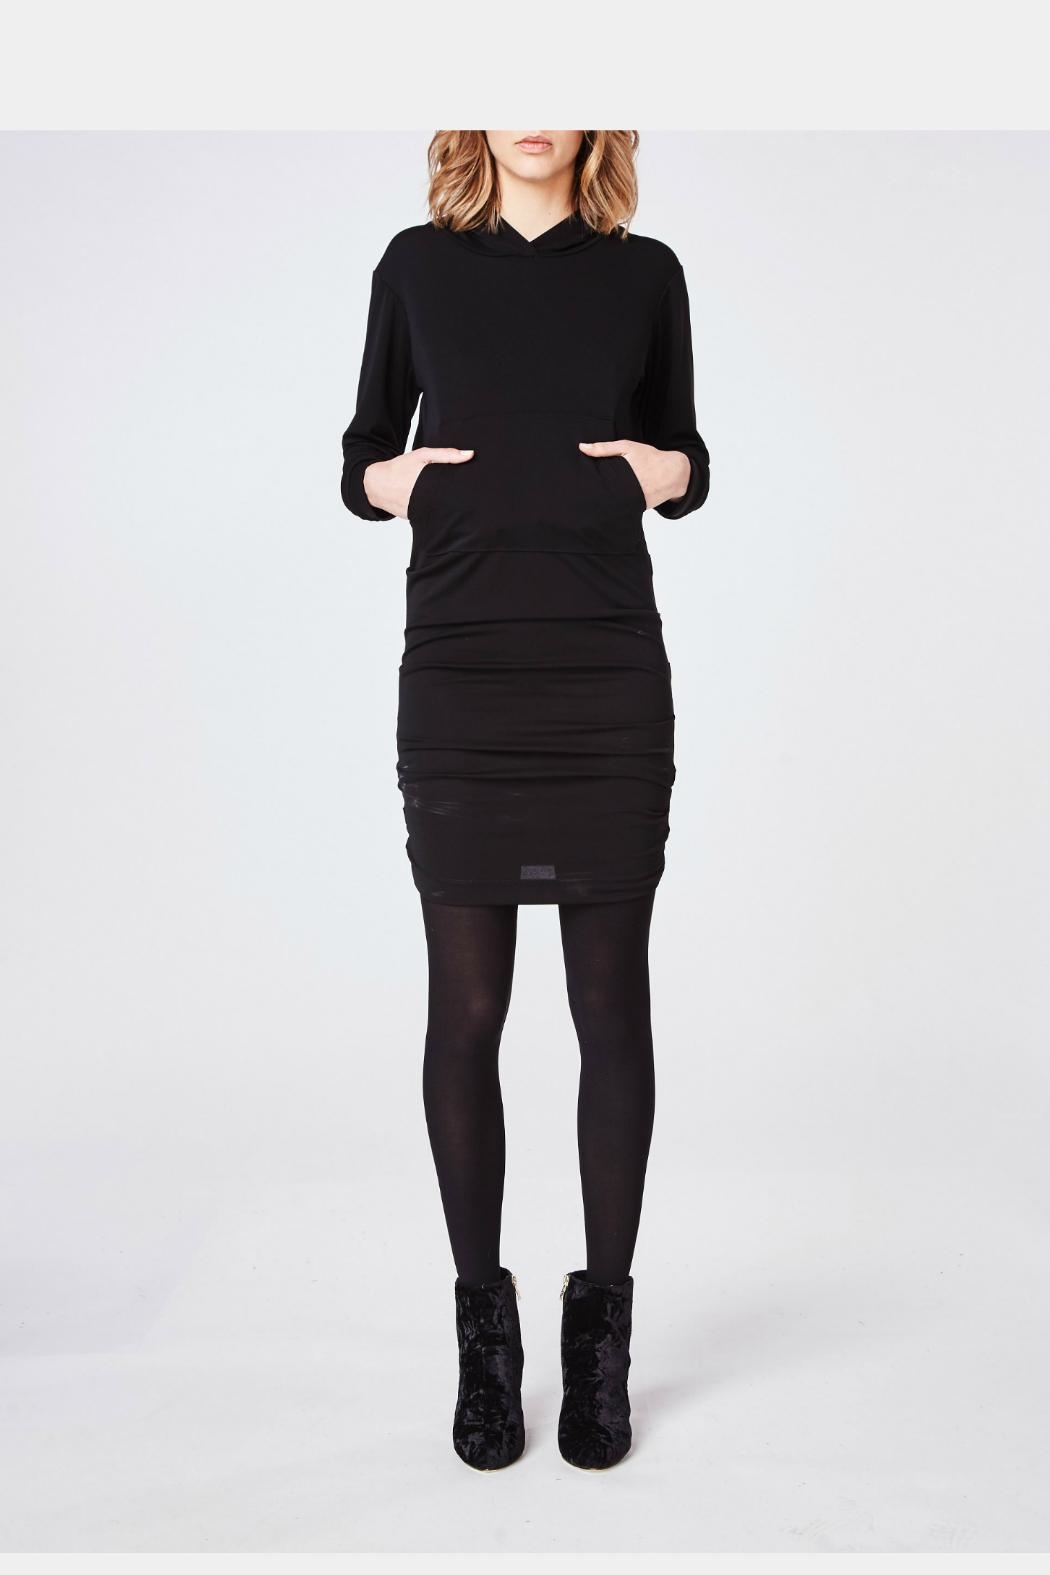 Nicole Miller Stretchy Jersey Dress - Main Image